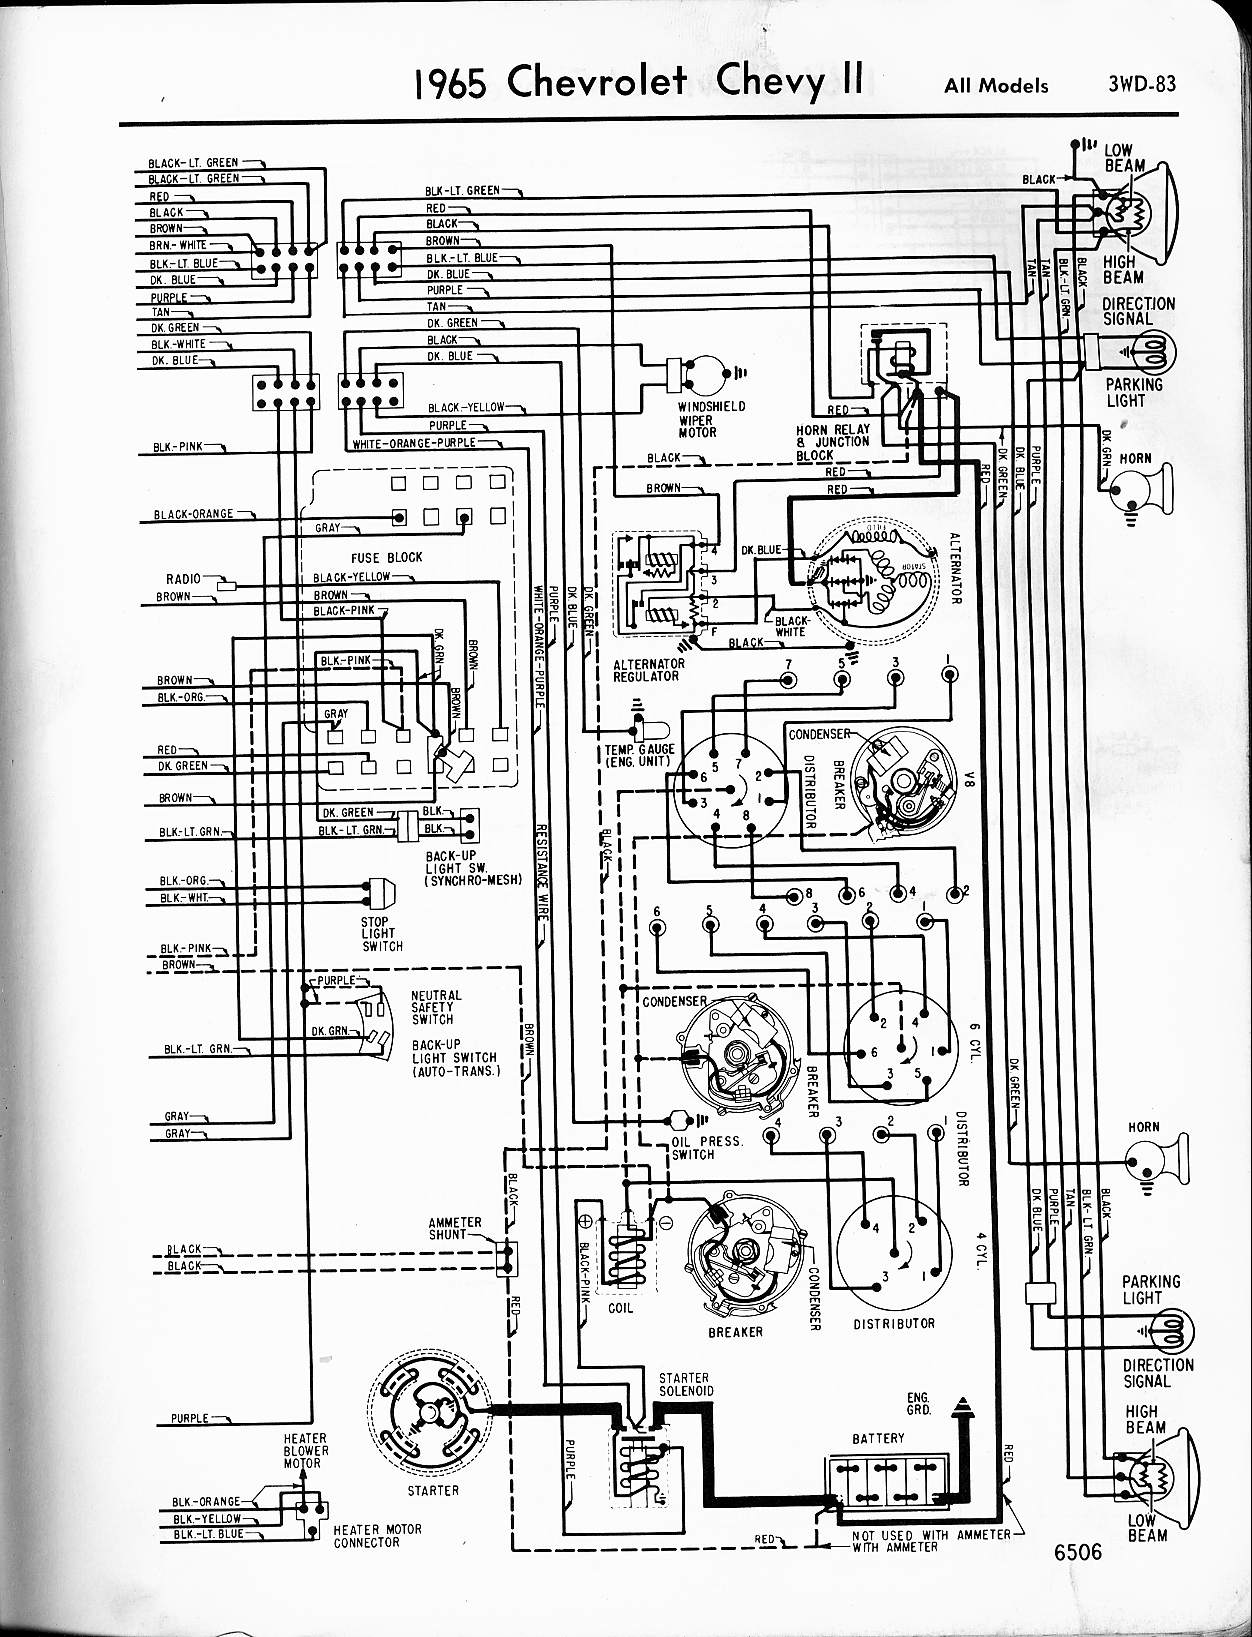 MWireChev65_3WD 083 1969 chevy nova wiring diagram 1969 chevelle engine wiring diagram 1972 nova wiring diagram at n-0.co